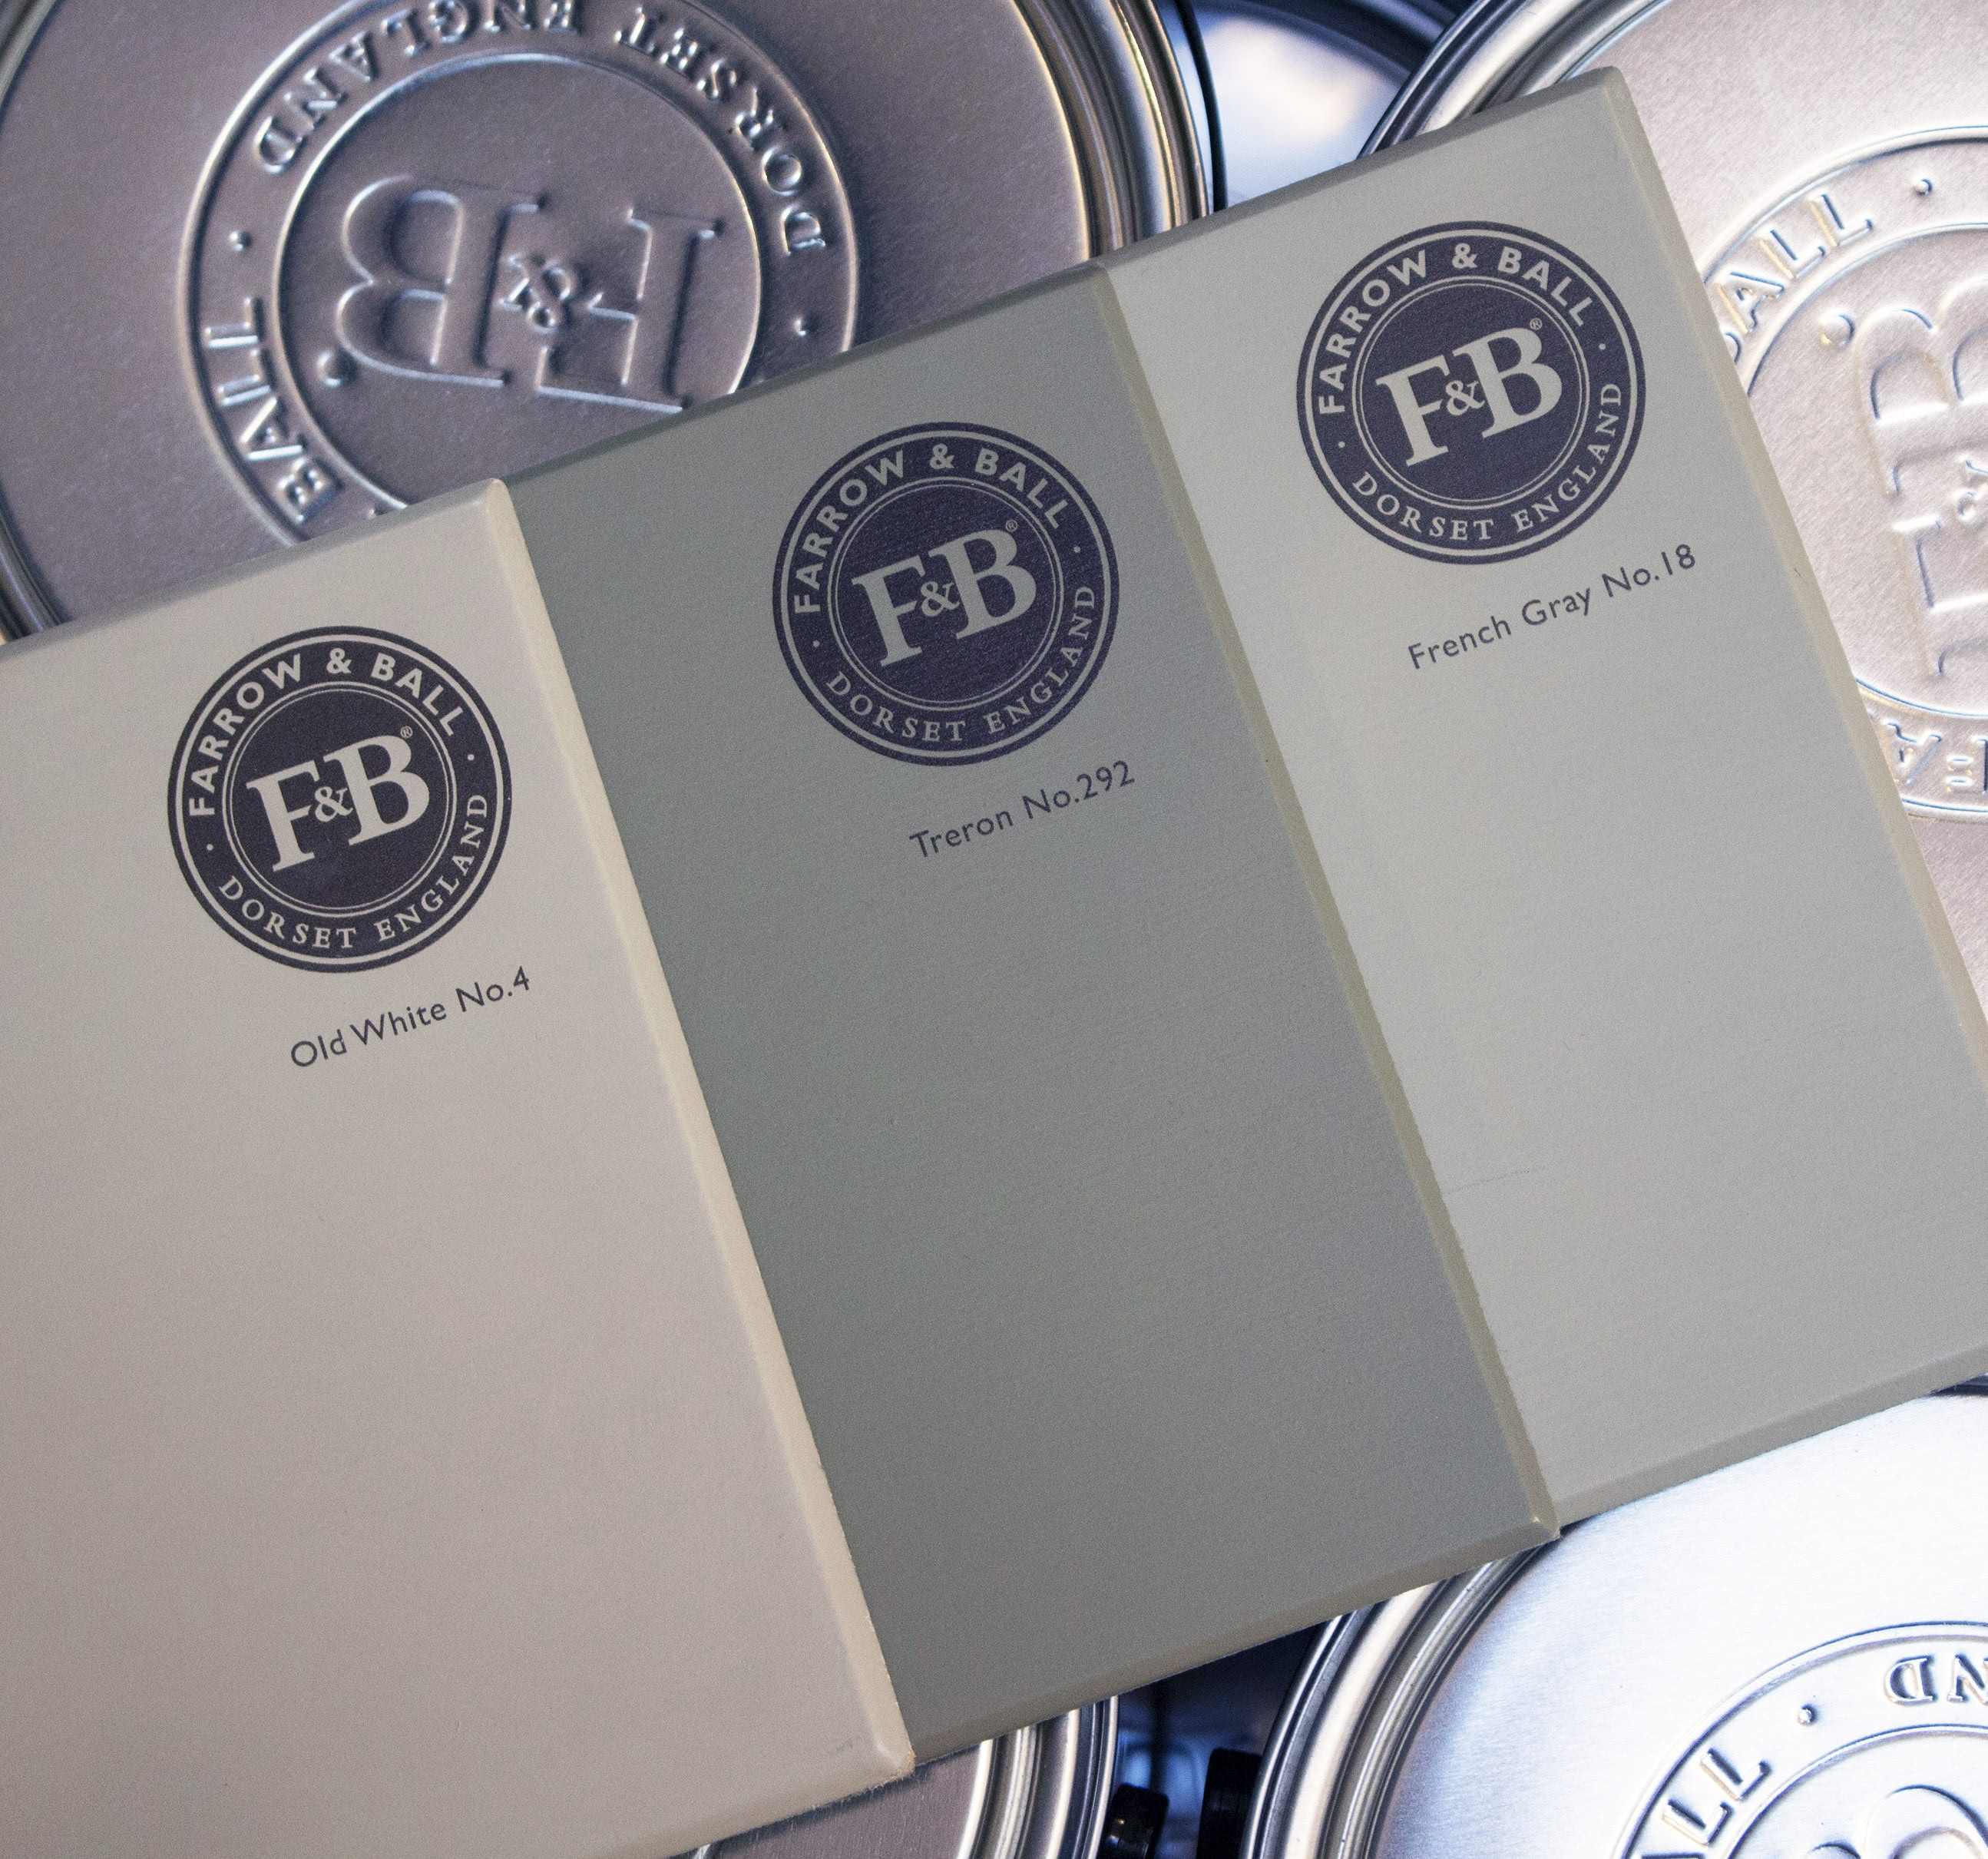 farrow&ball, farrow and ball, paint, decorating, paint brush, treron